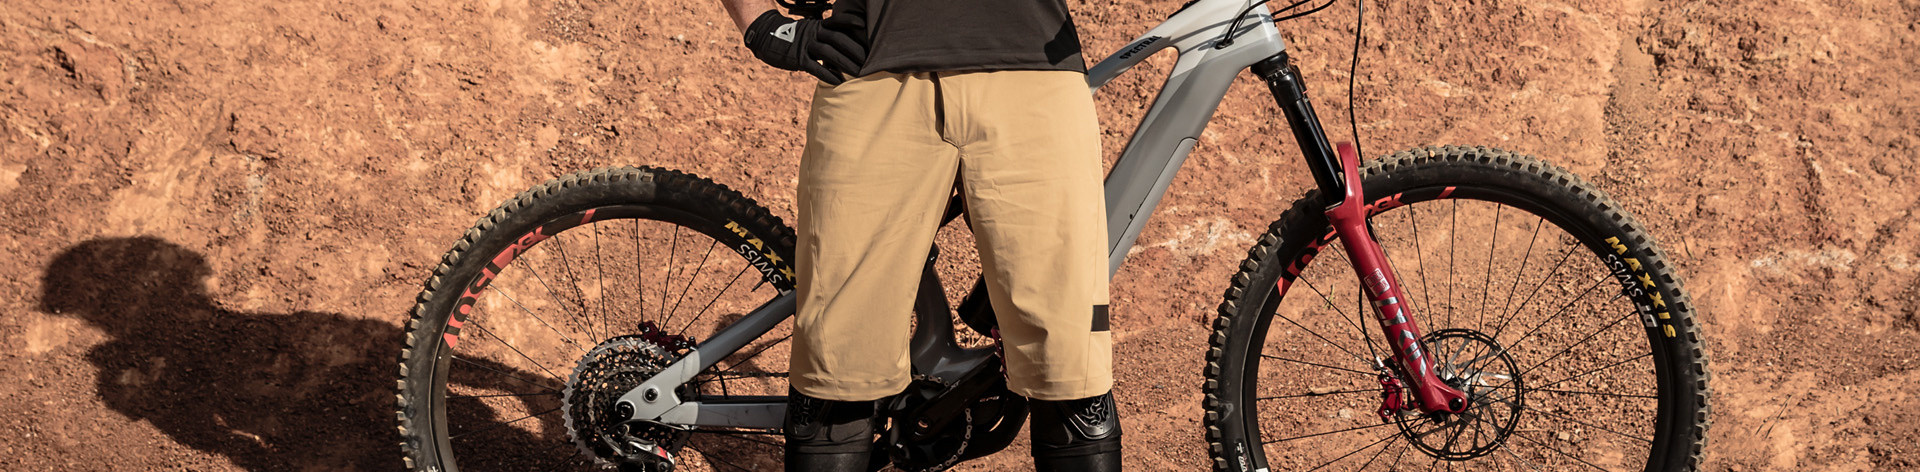 Dainese Bike pants